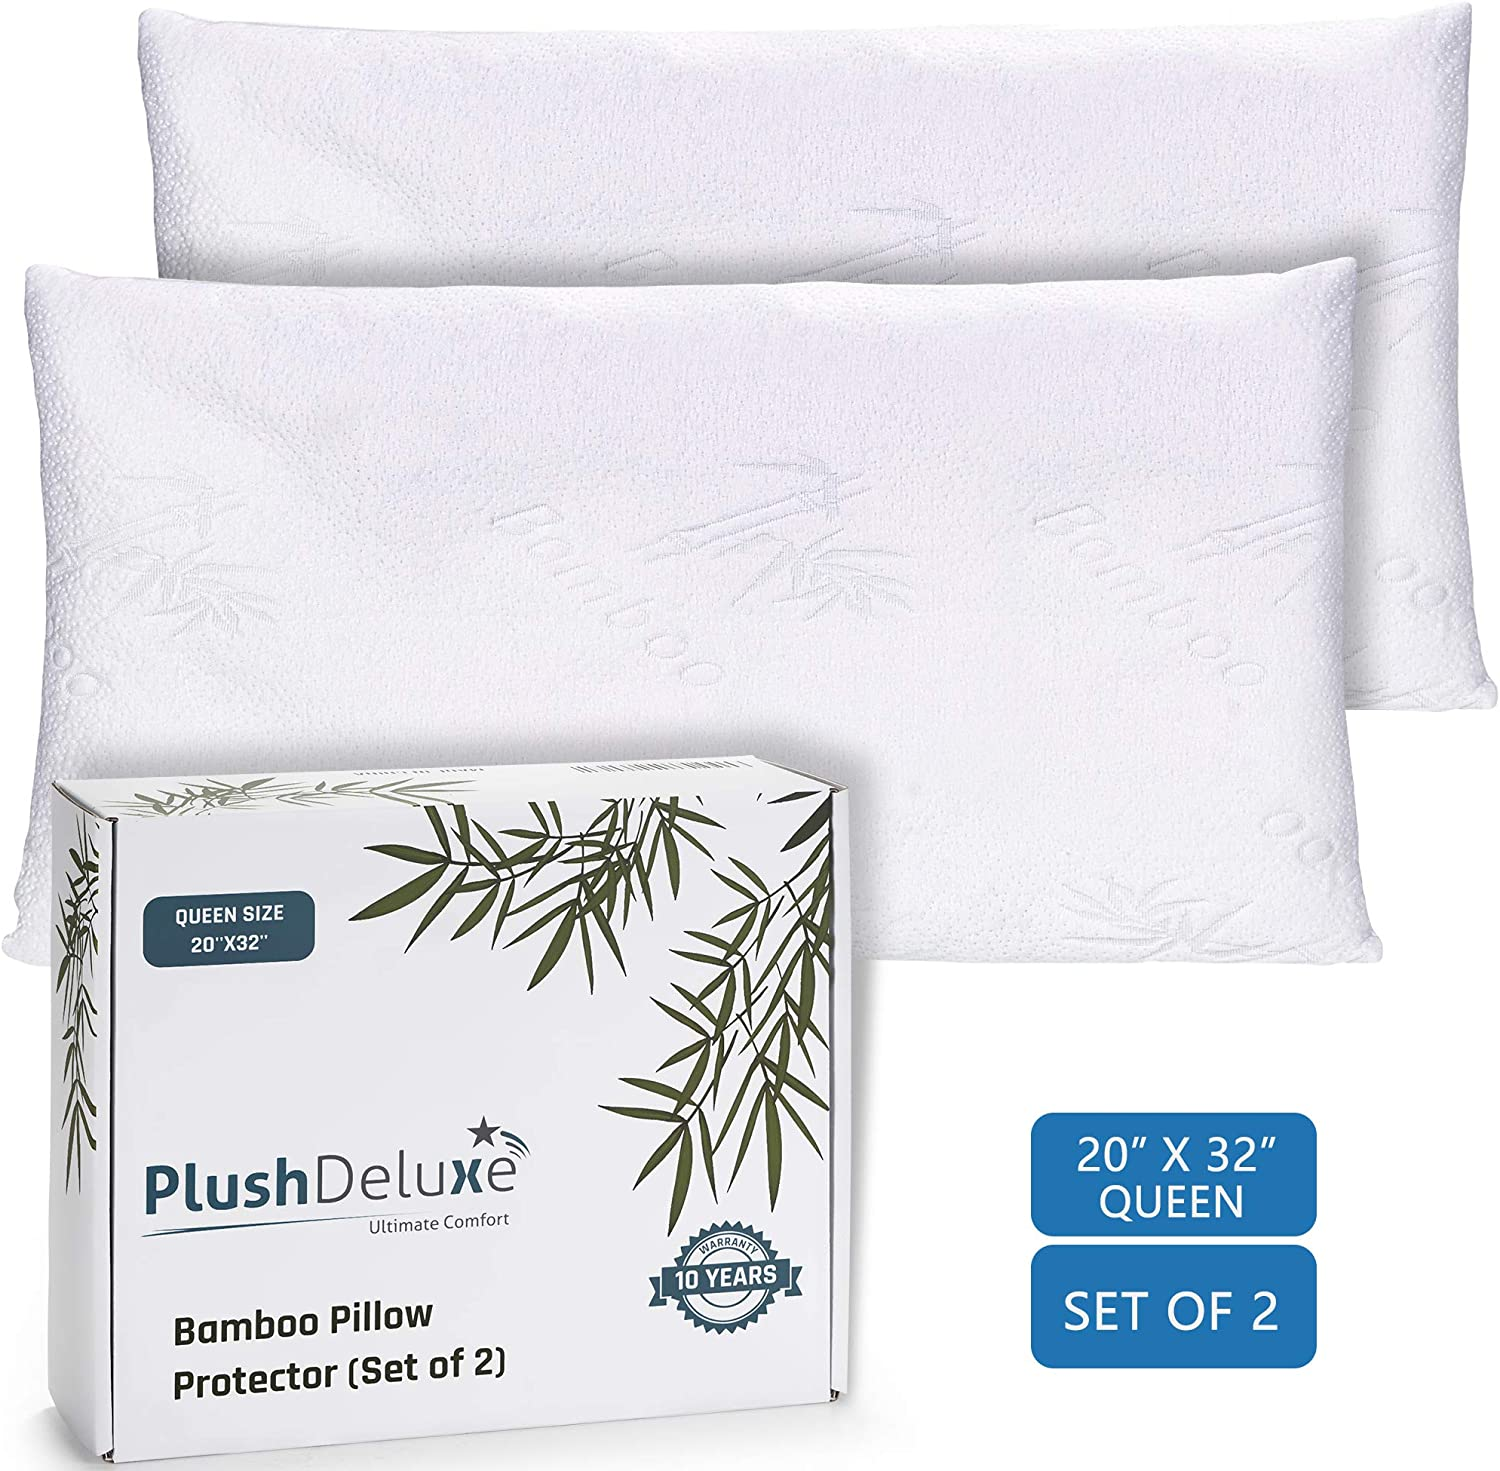 Premium Bamboo Queen Pillow Protector Covers - Waterproof, Allergy, Dust, Bed Bug, and Mite Proof Zippered Protectors - Pillowcase Zipper Cover Allergen Case Pack For Sleep Pillows - Set of 2